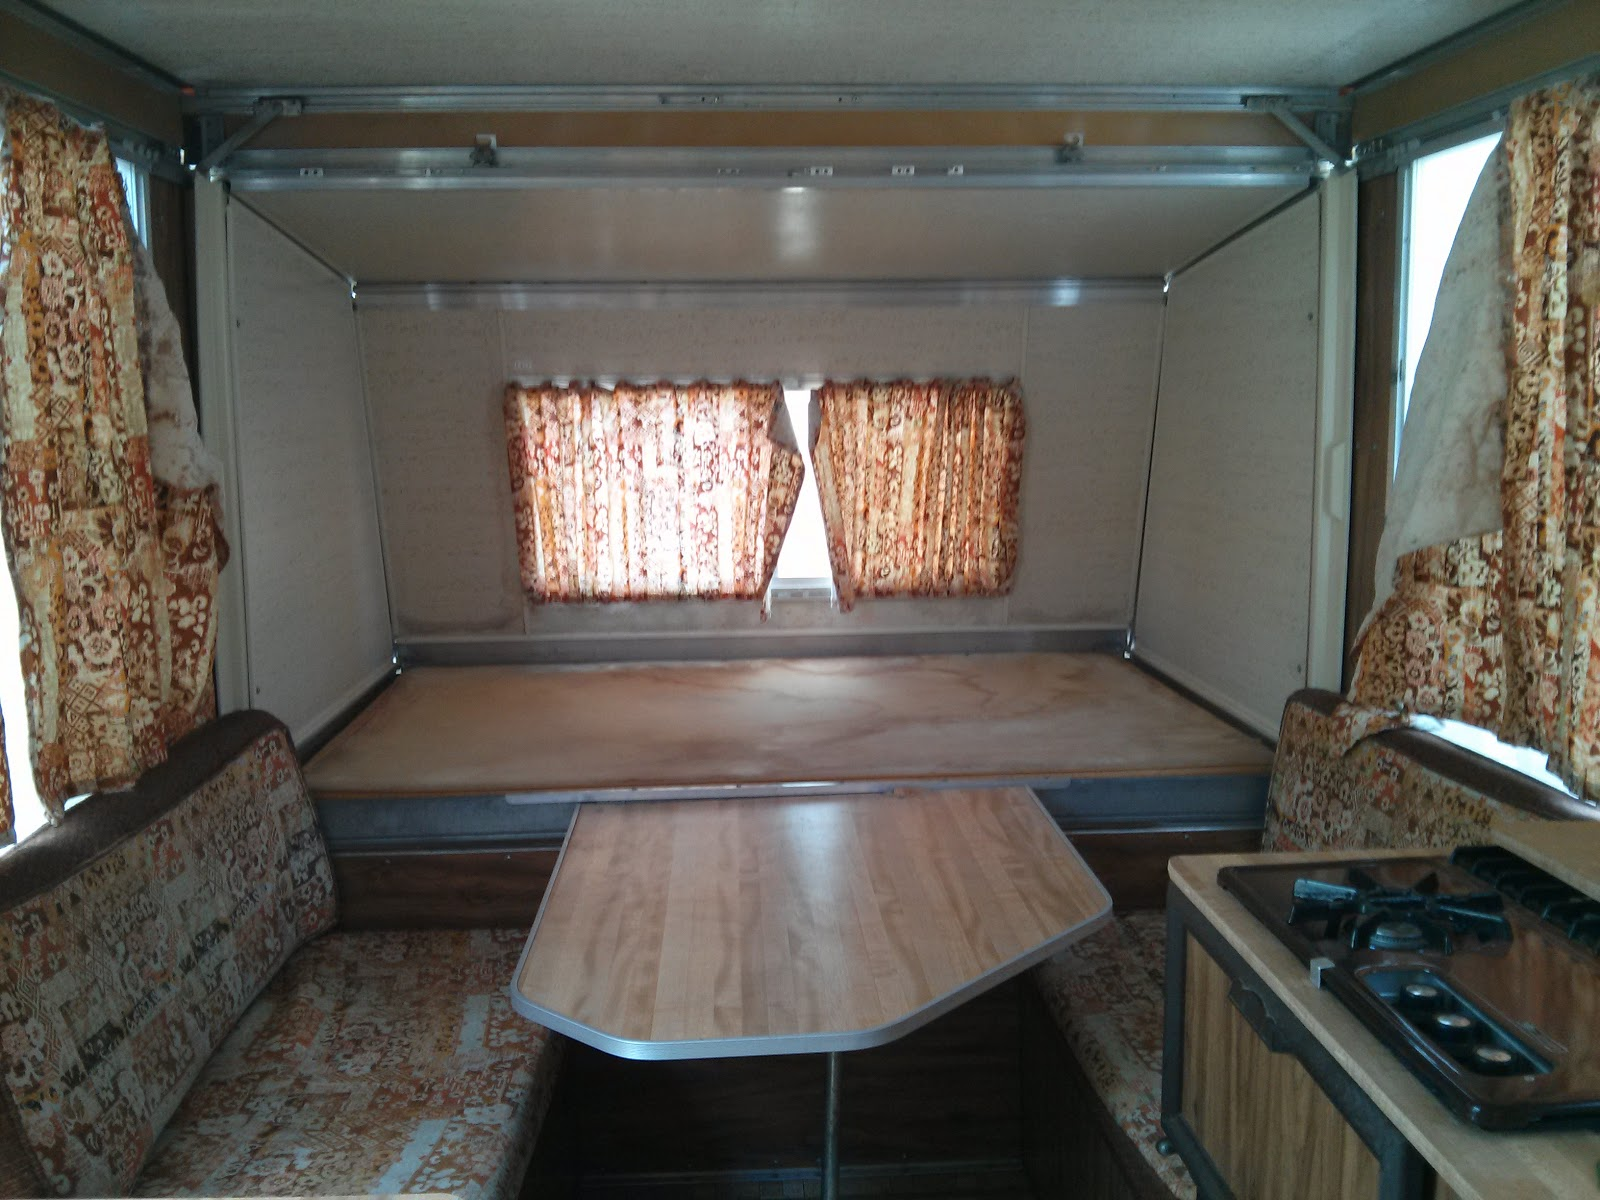 1976 Apache Mesa camper interior with original brown upholstery and curtains